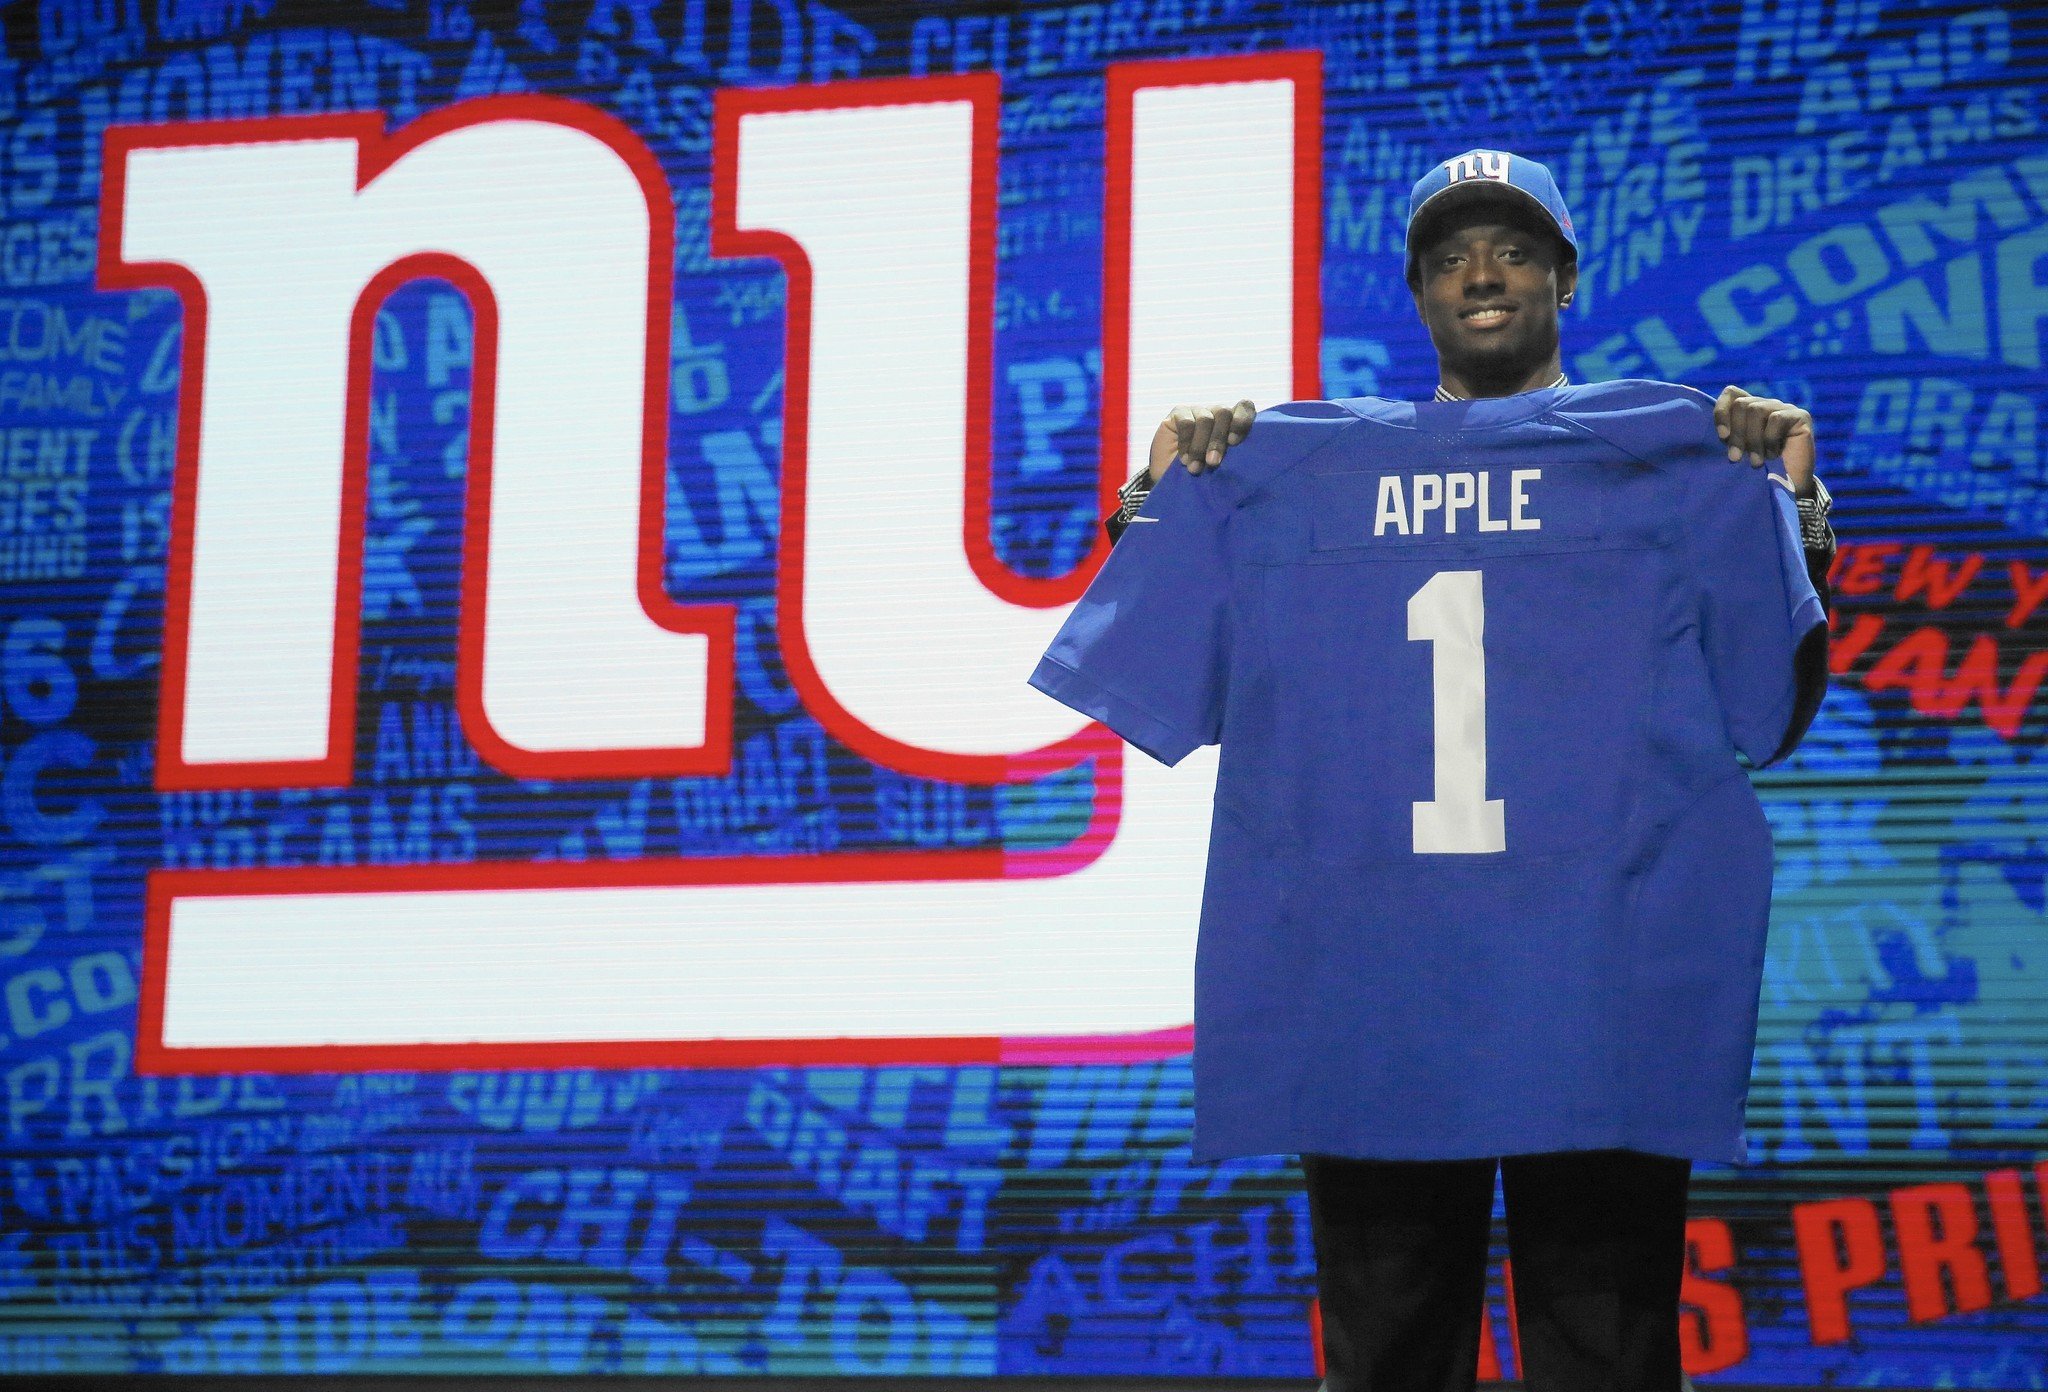 giants draft ohio state 39 s apple with 10th overall pick baltimore sun. Black Bedroom Furniture Sets. Home Design Ideas